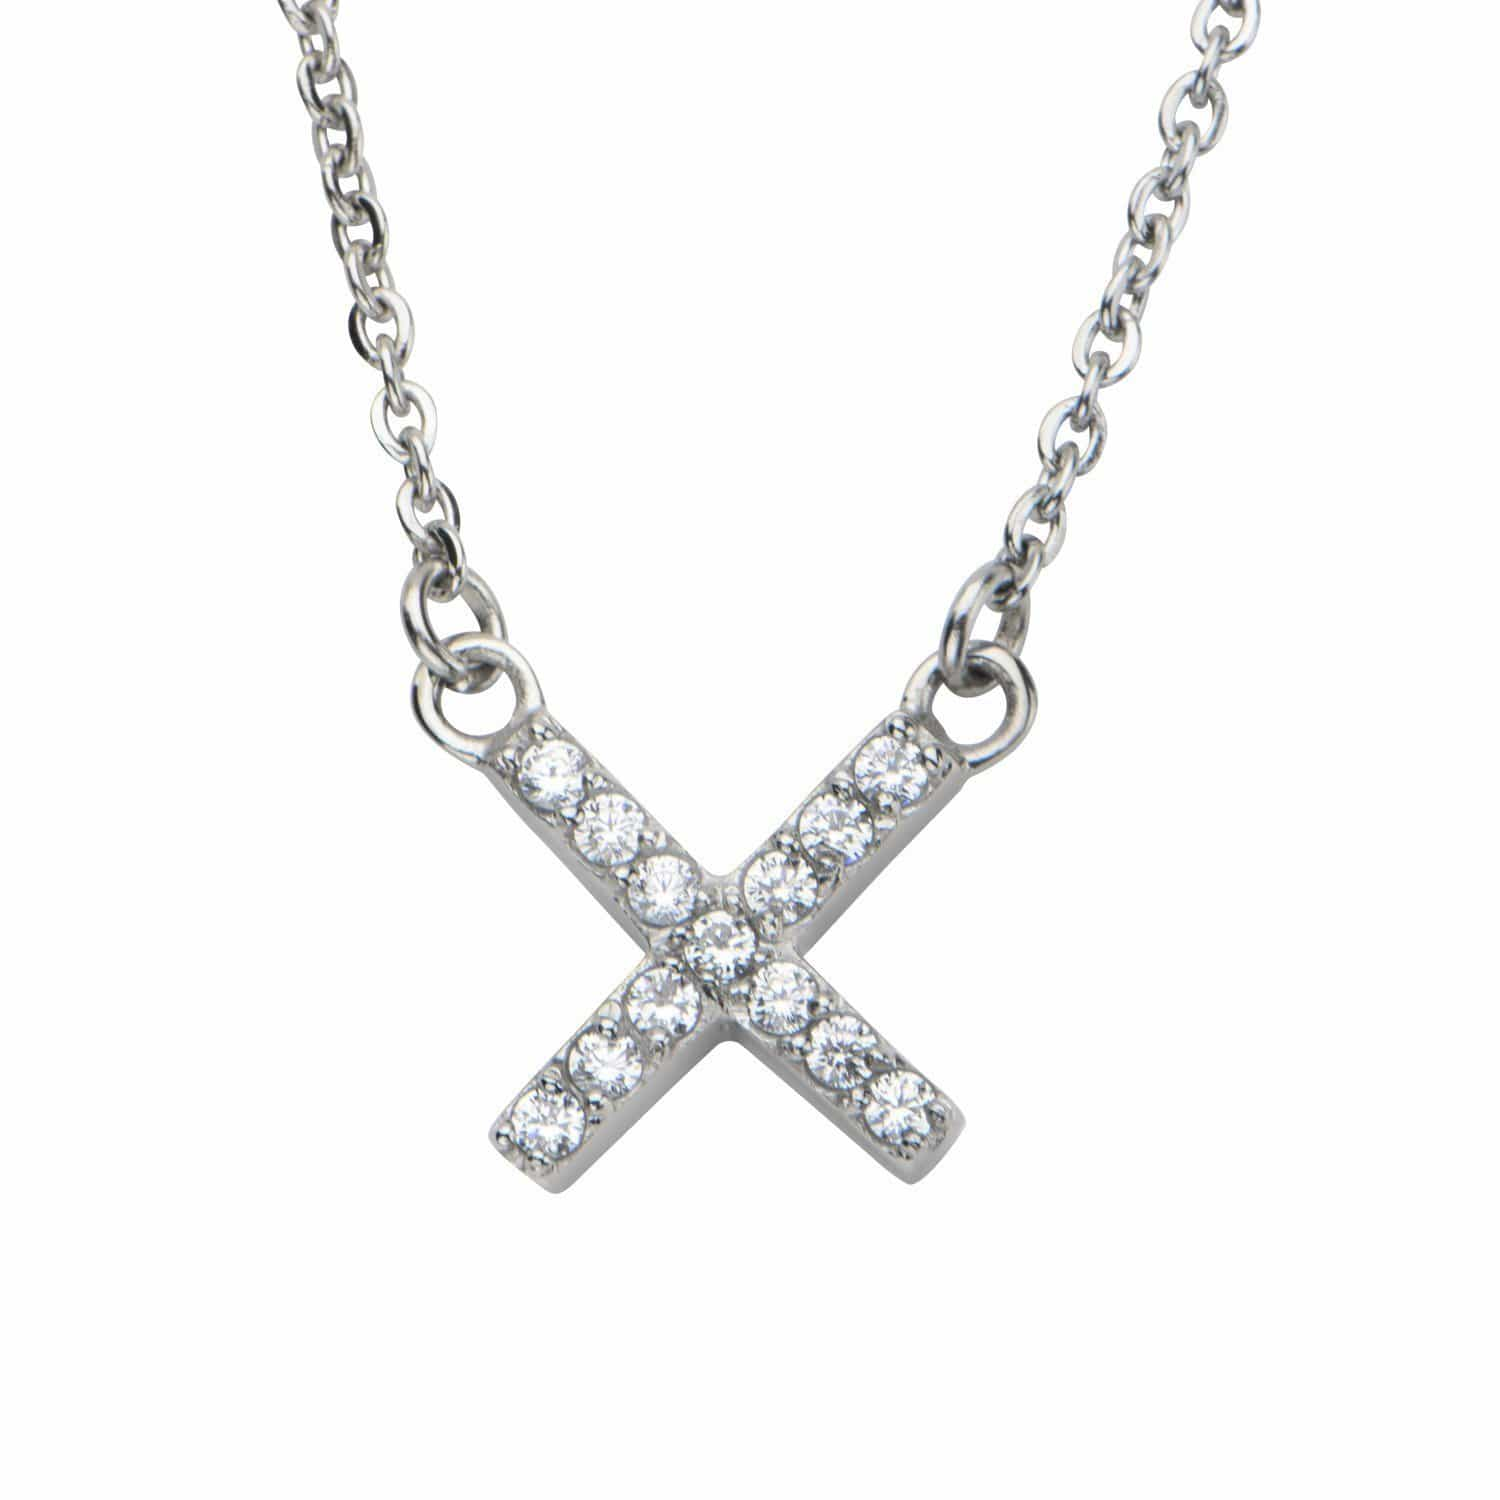 Silver Stainless Steel Twinkle White CZ 'X' Necklace Pendants